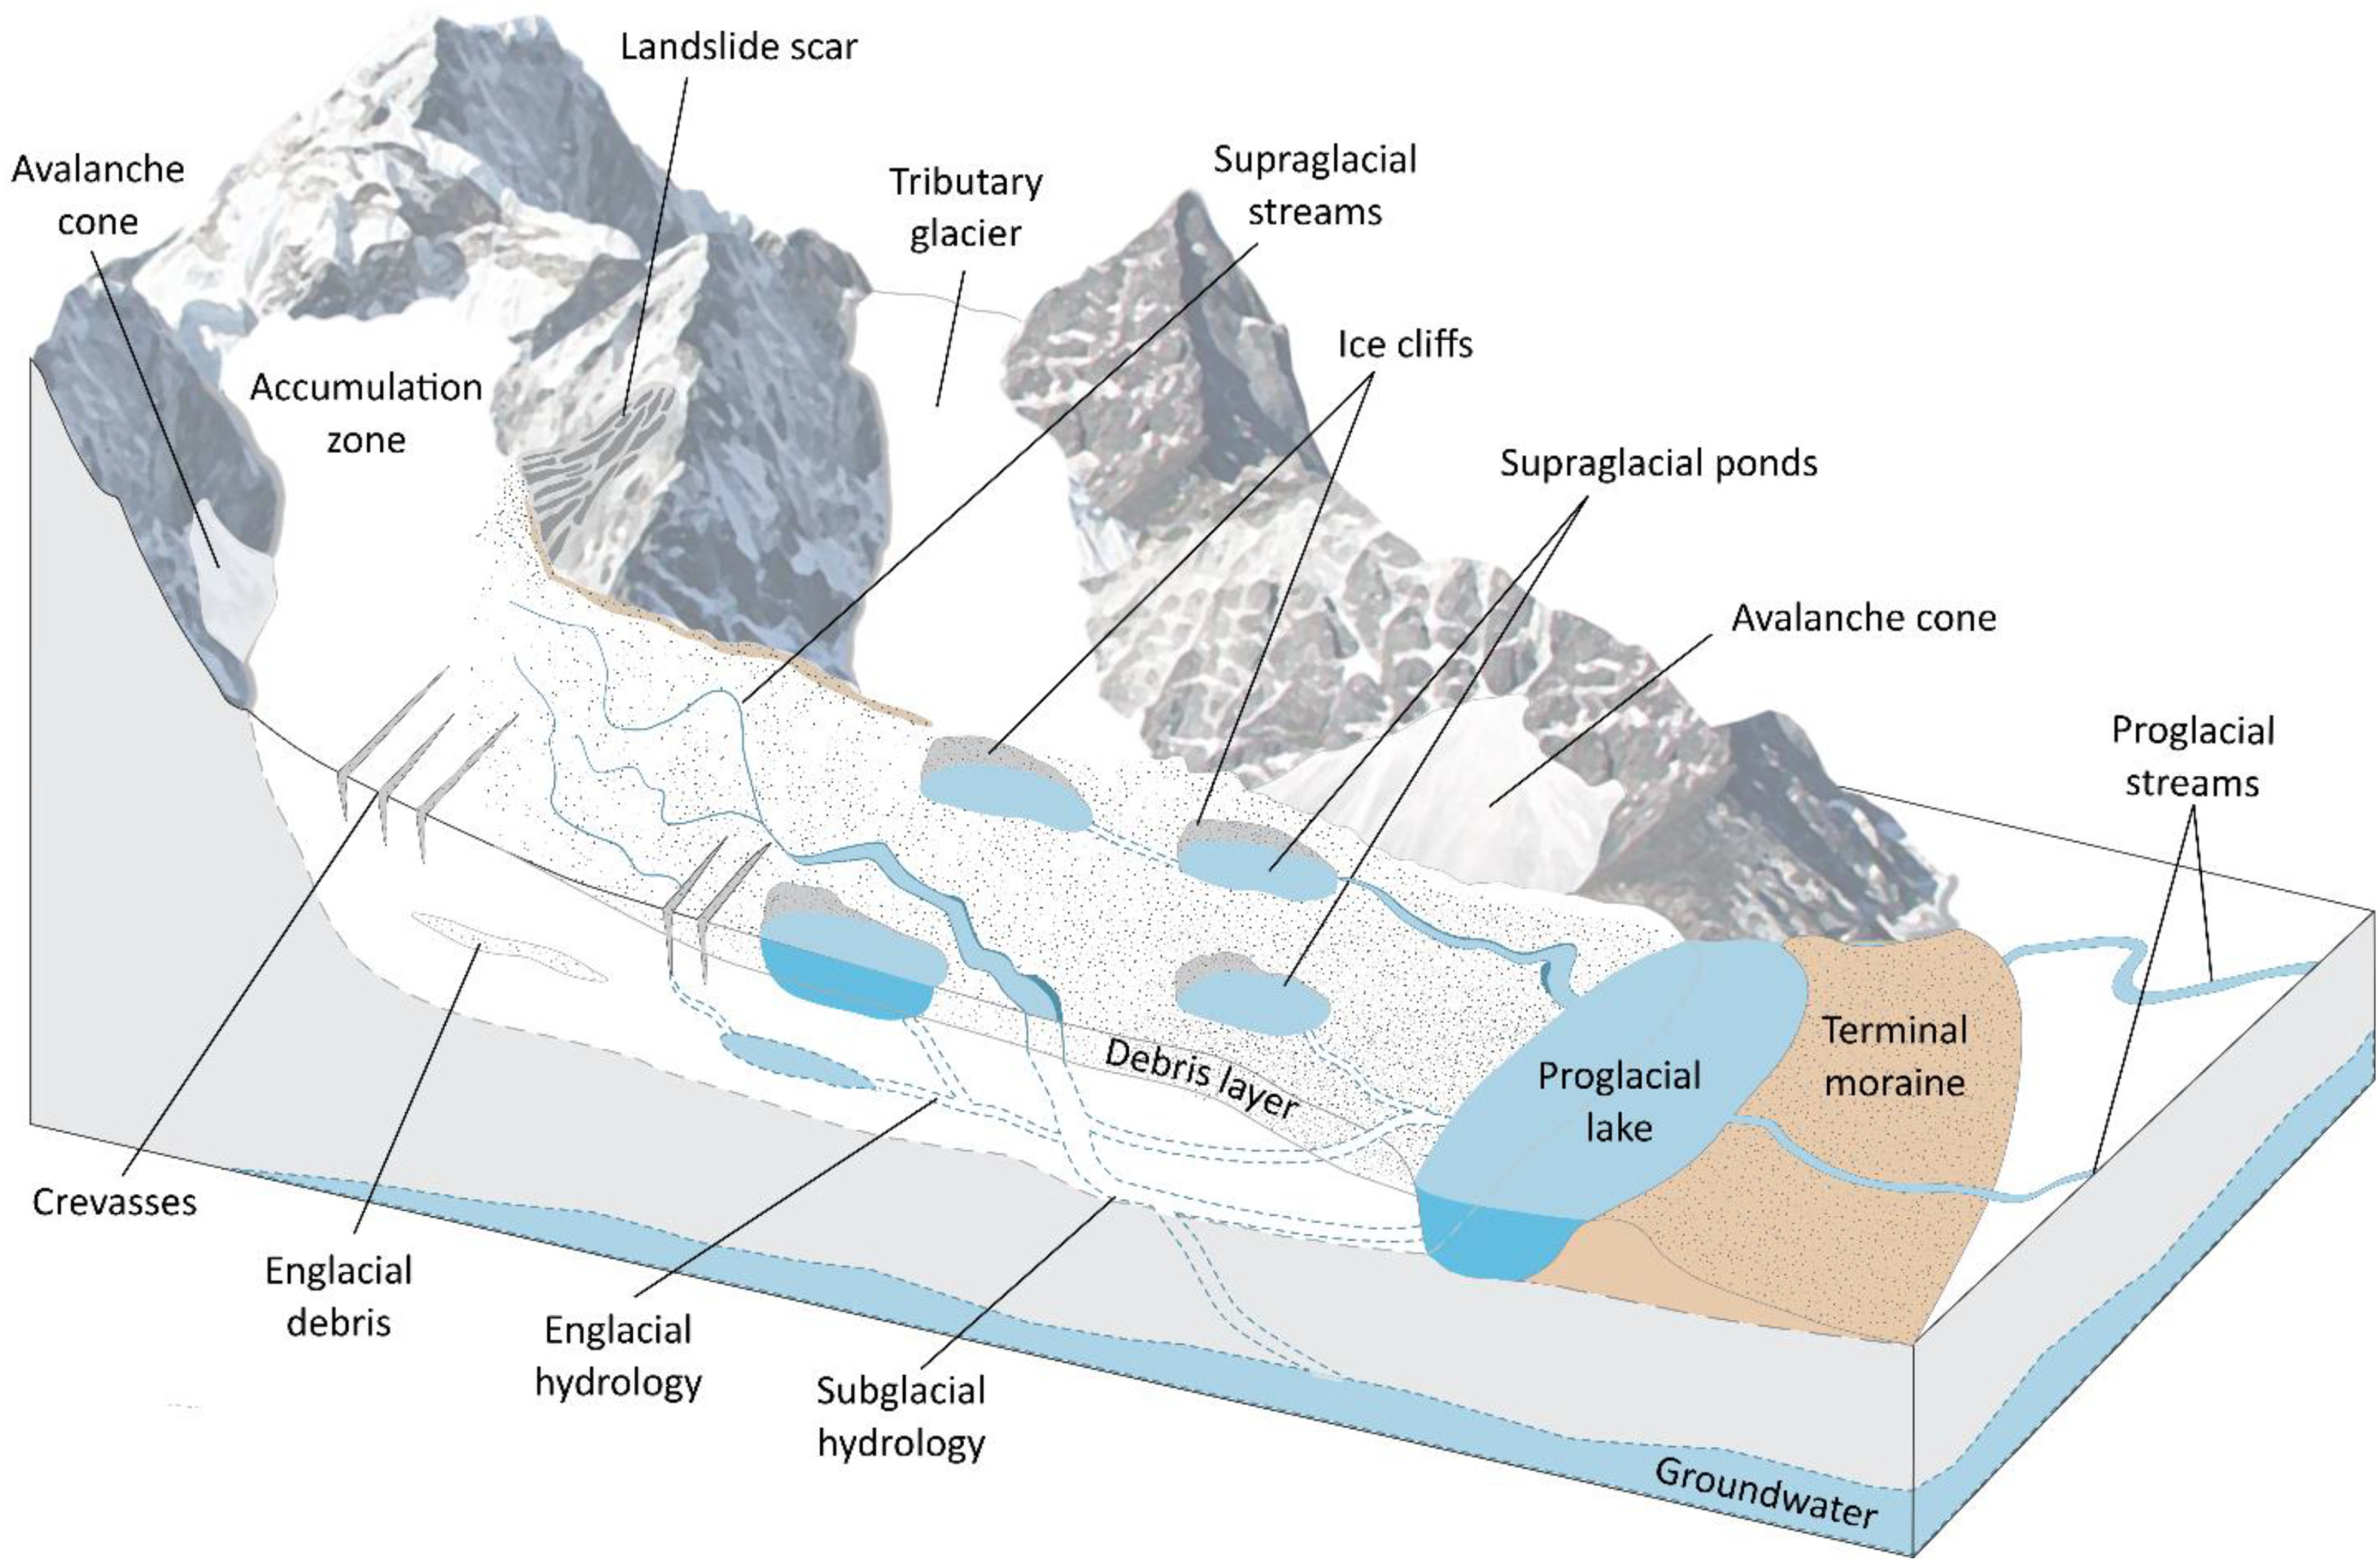 Diagram showing how surface water accesses the glacier bed